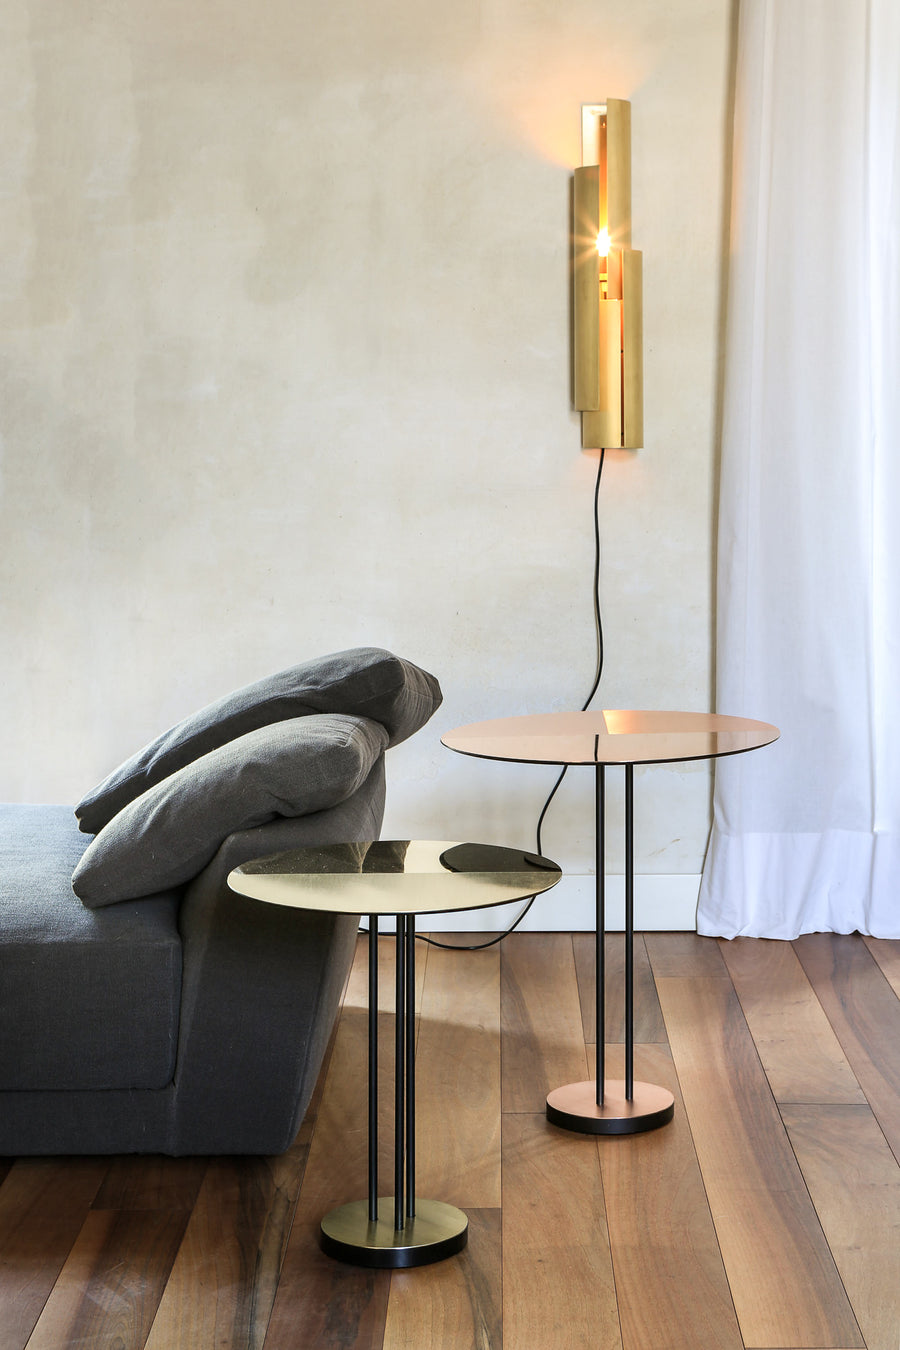 PIEGA Wall Lamp by Aldo Parisotto for Mingardo - DUPLEX DESIGN